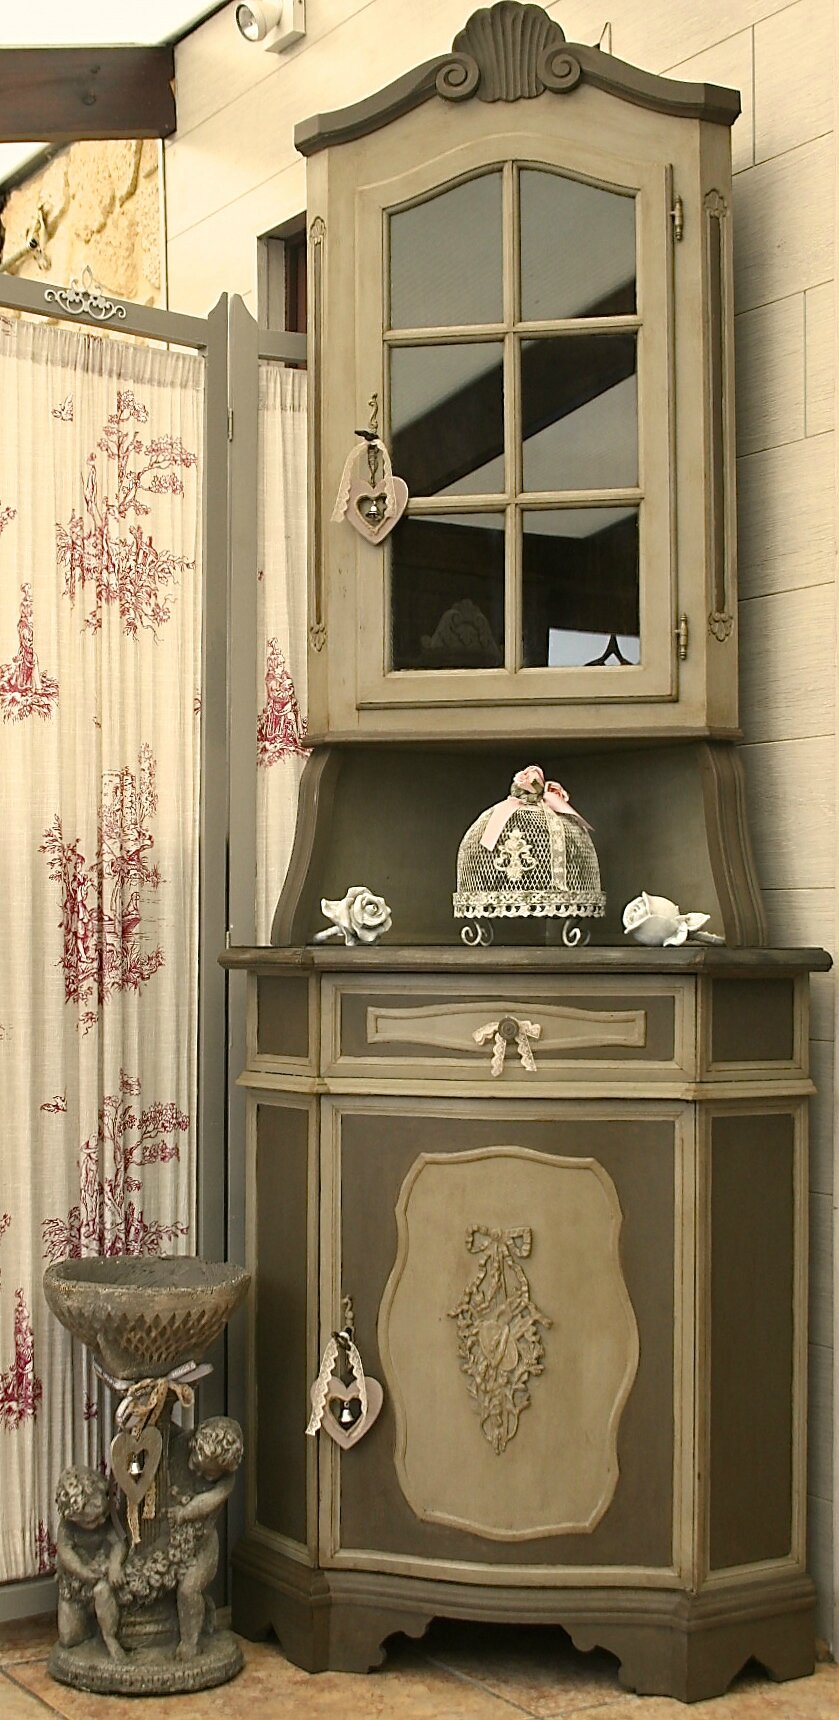 meuble de coin encoignure patin e blog de missantic. Black Bedroom Furniture Sets. Home Design Ideas